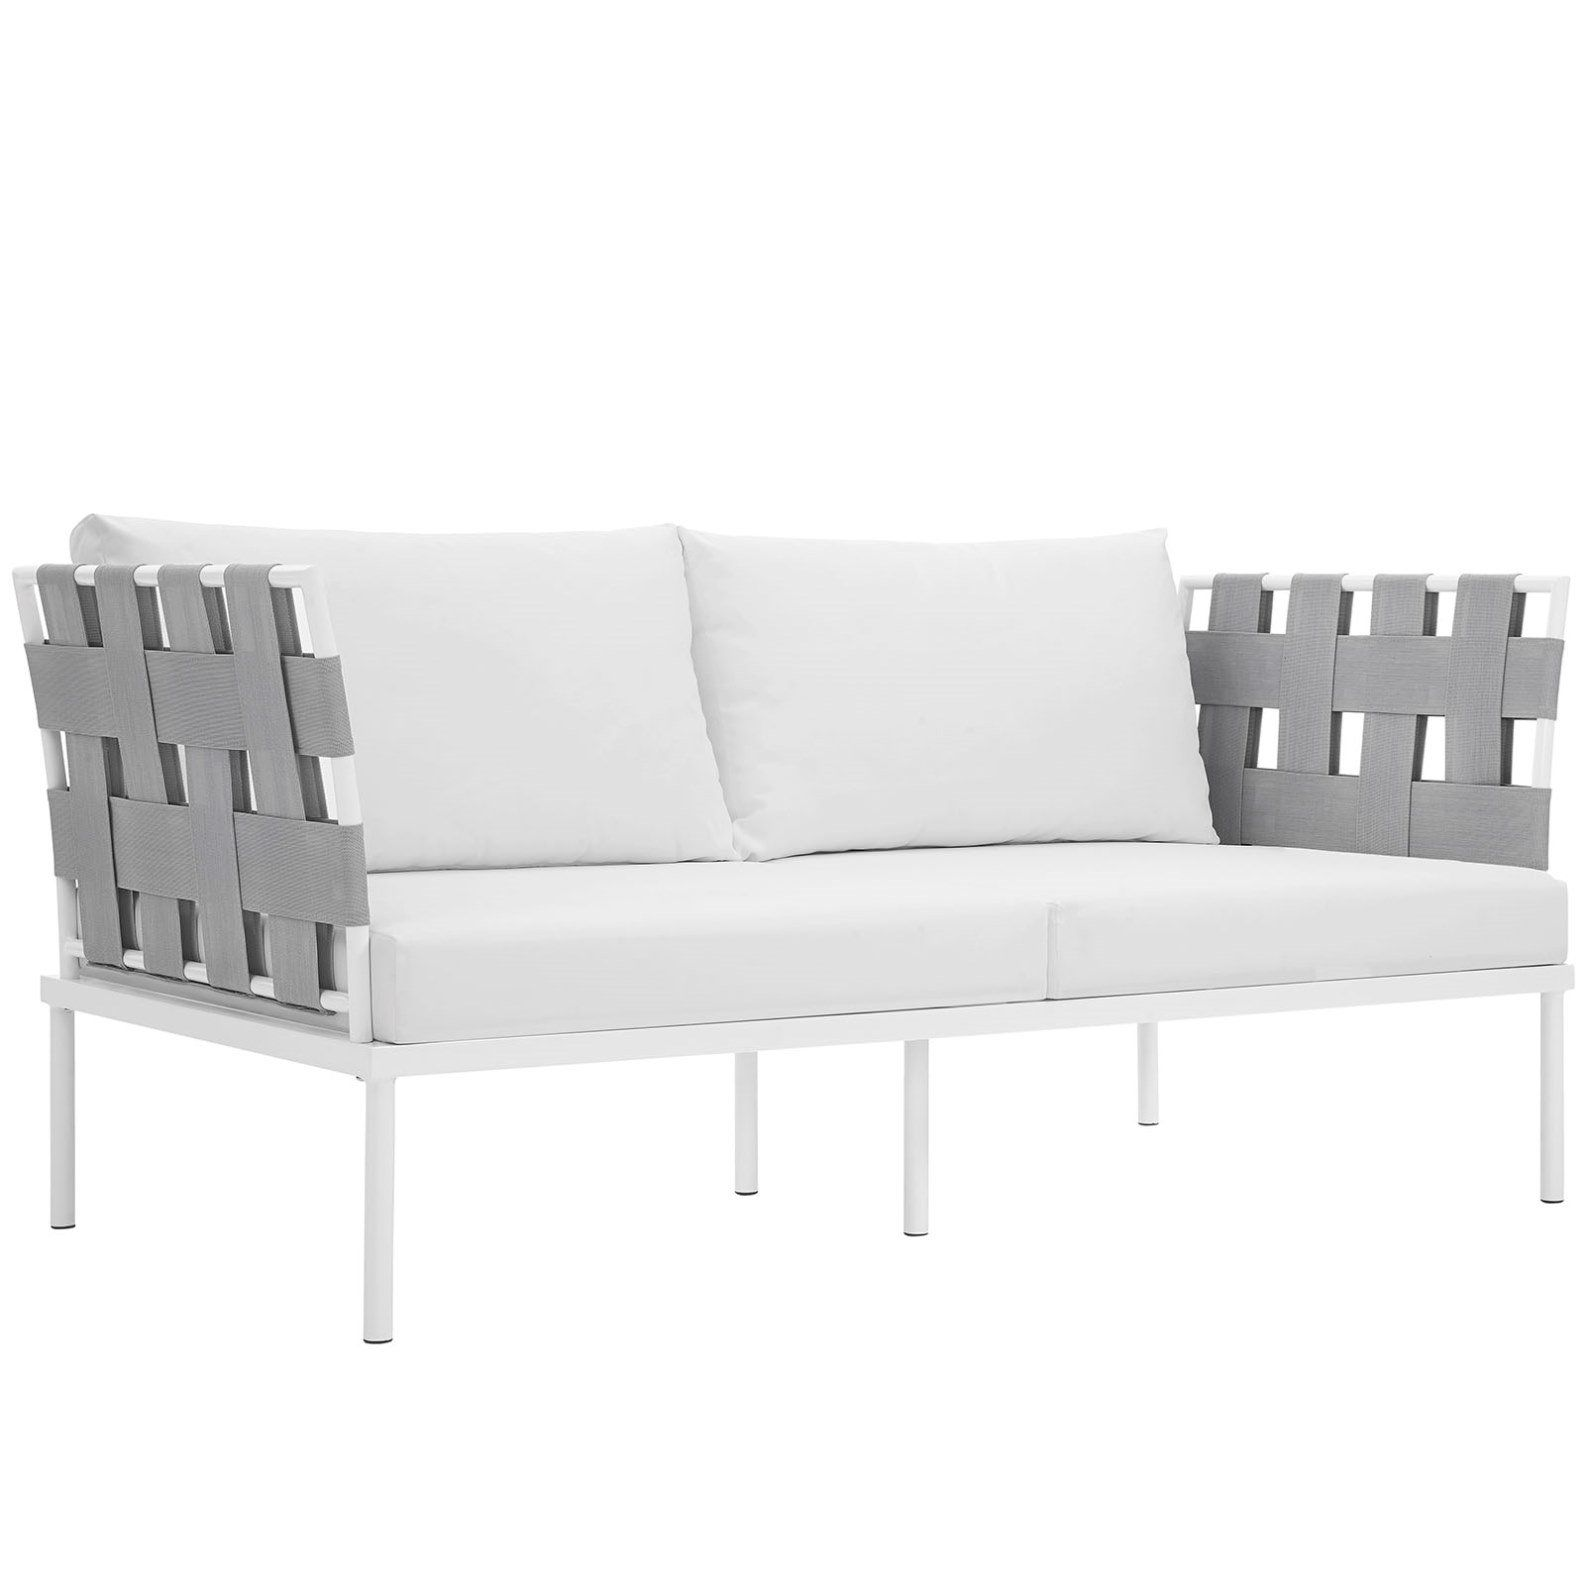 Modern Contemporary Urban Design Outdoor Patio Balcony Loveseat Sofa White Rattan You Can Get More Details By Modern Furniture Sets Patio Loveseat Furniture